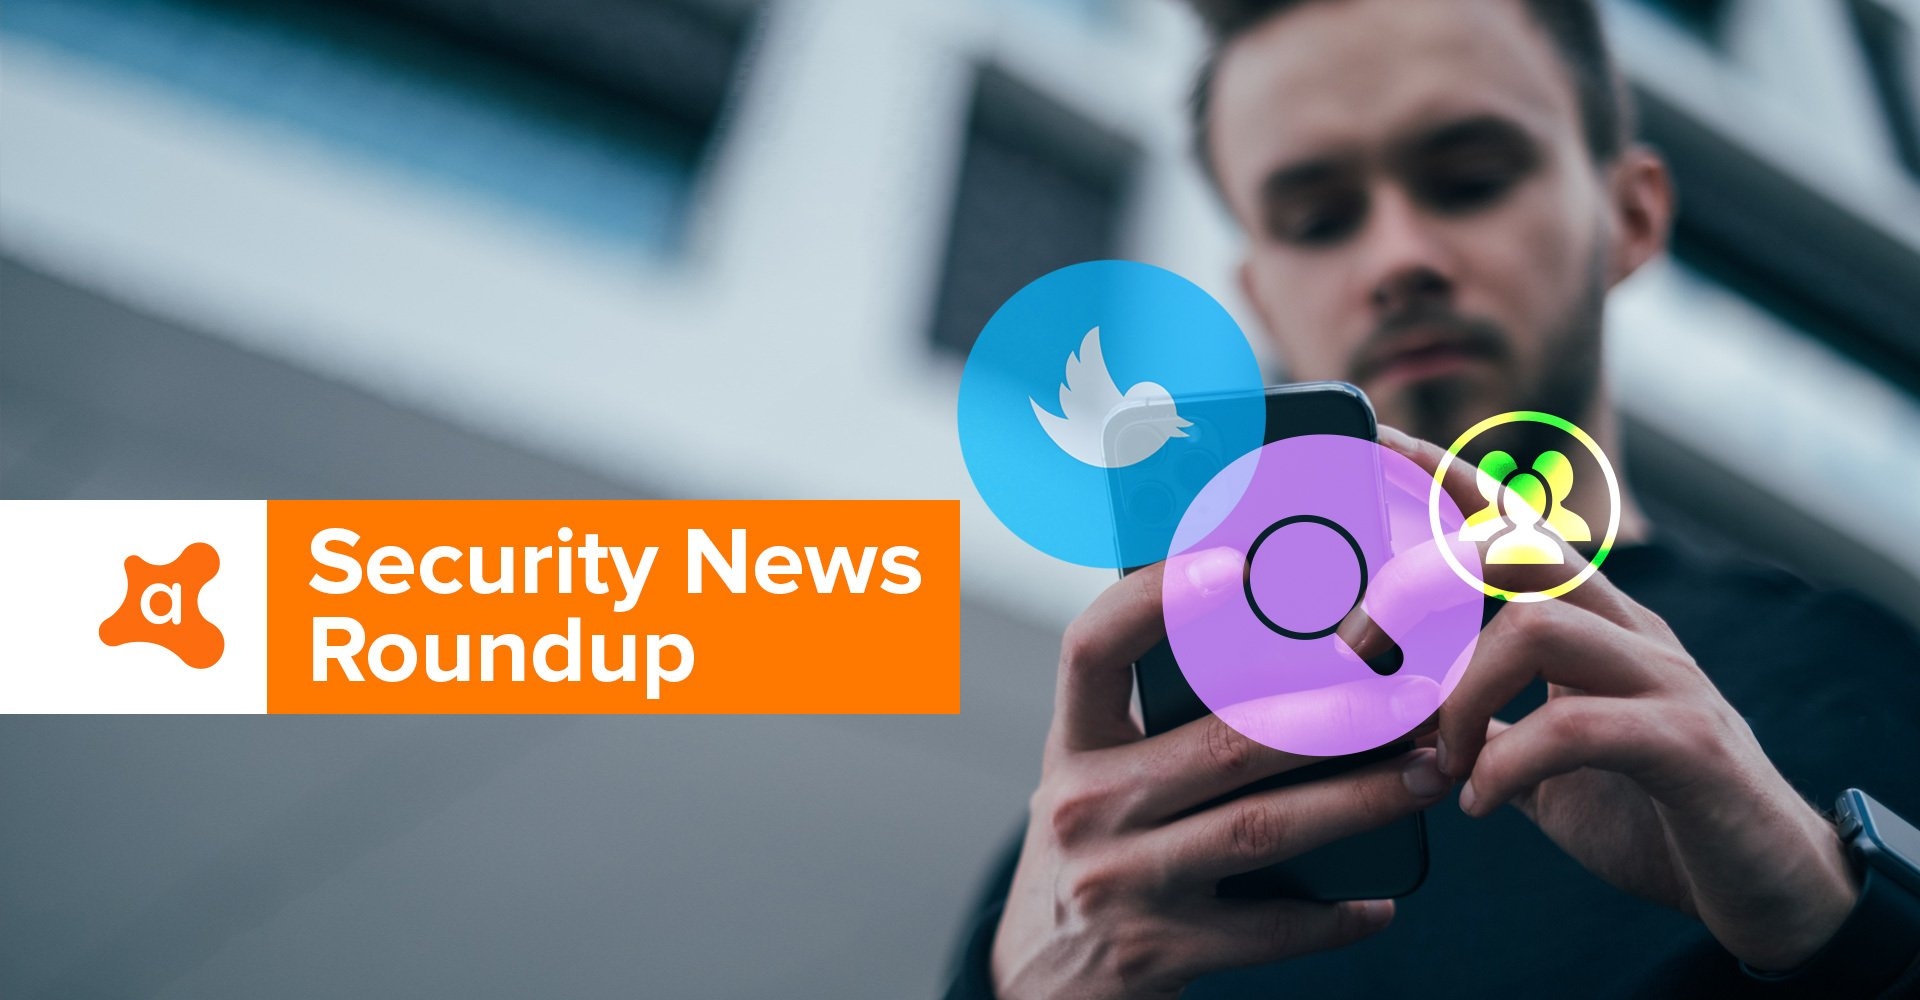 Twitter Considers New Security Features | Avast